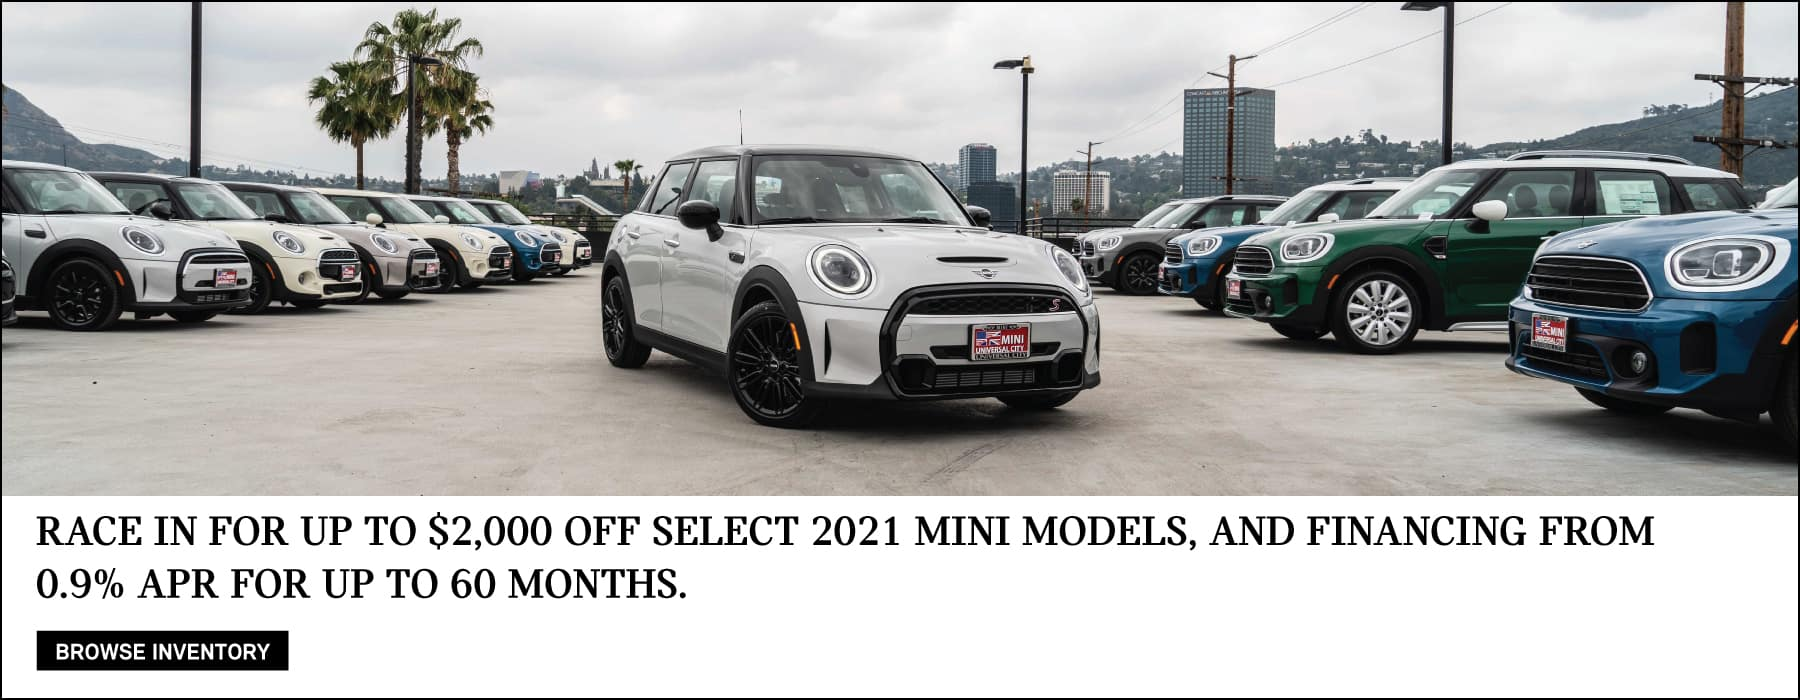 $2,000 of select 2021 MINI models